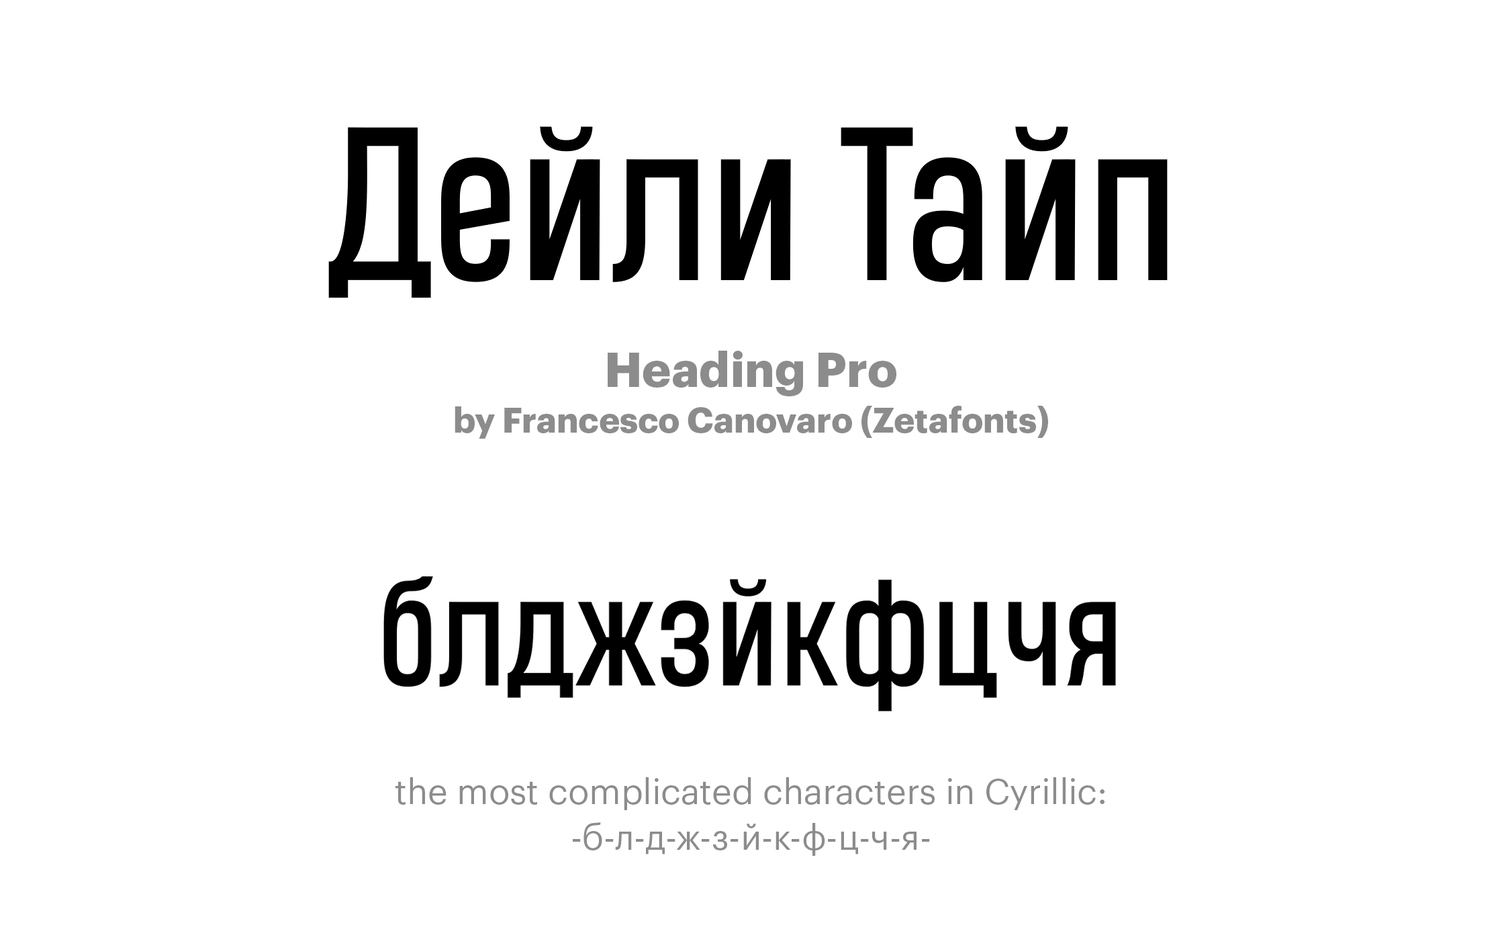 Heading-Pro-by-Francesco-Canovaro-(Zetafonts)